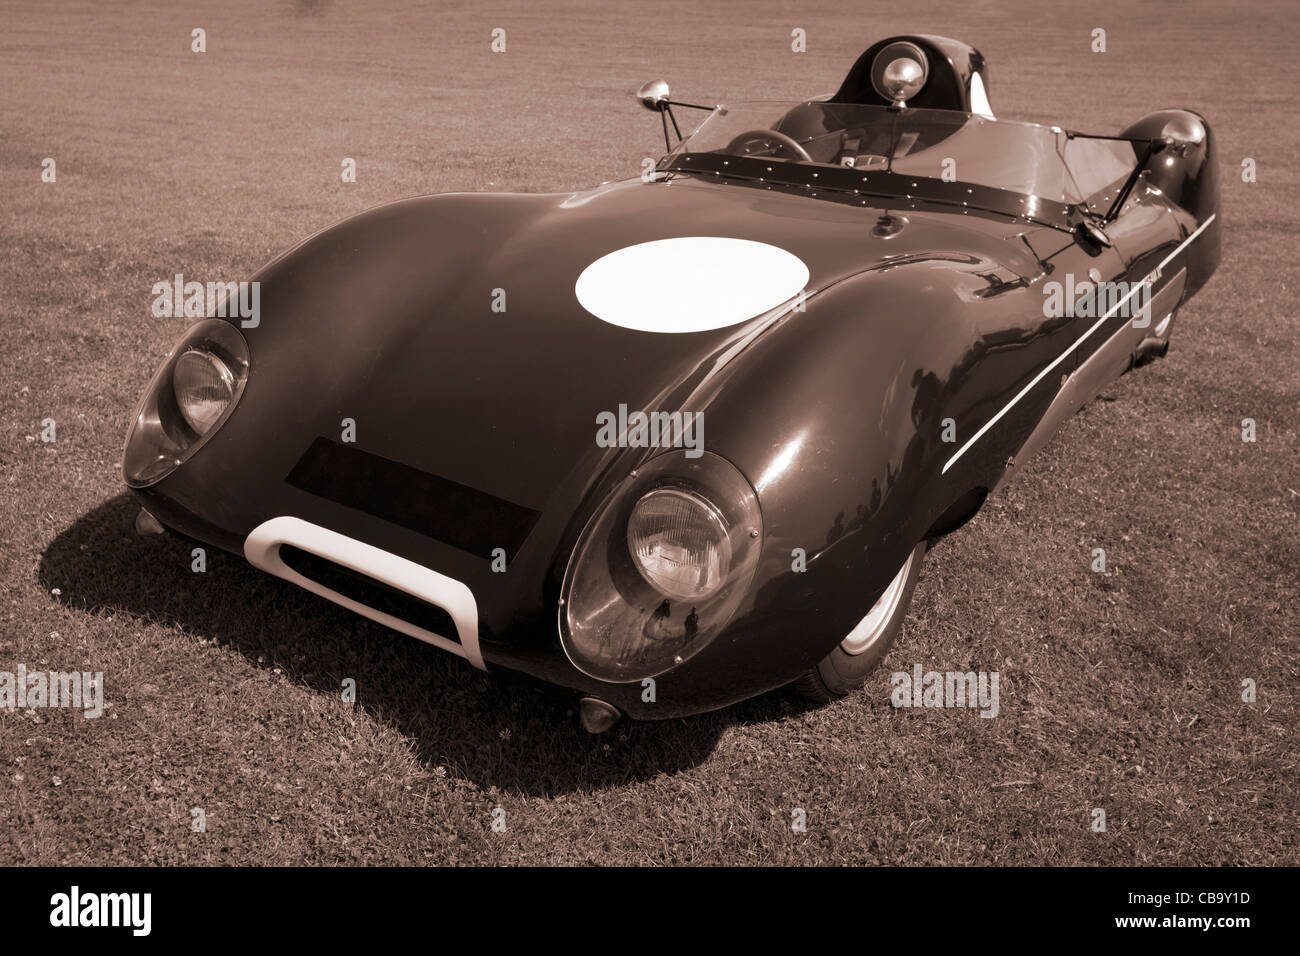 Old Race car sepia Stock Photo: 41400729 - Alamy